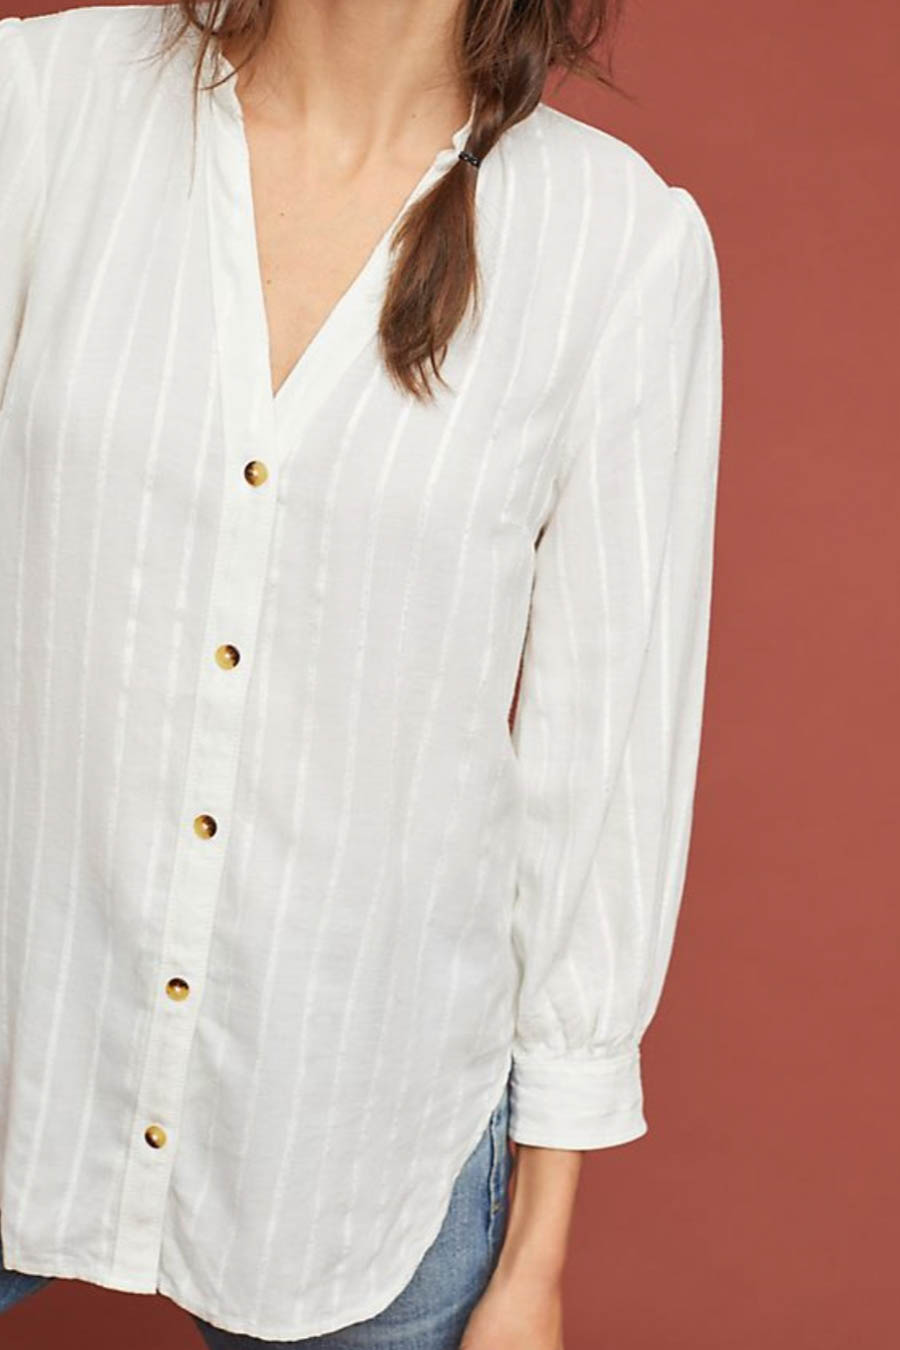 Bonn Shirt by Itch to Stitch